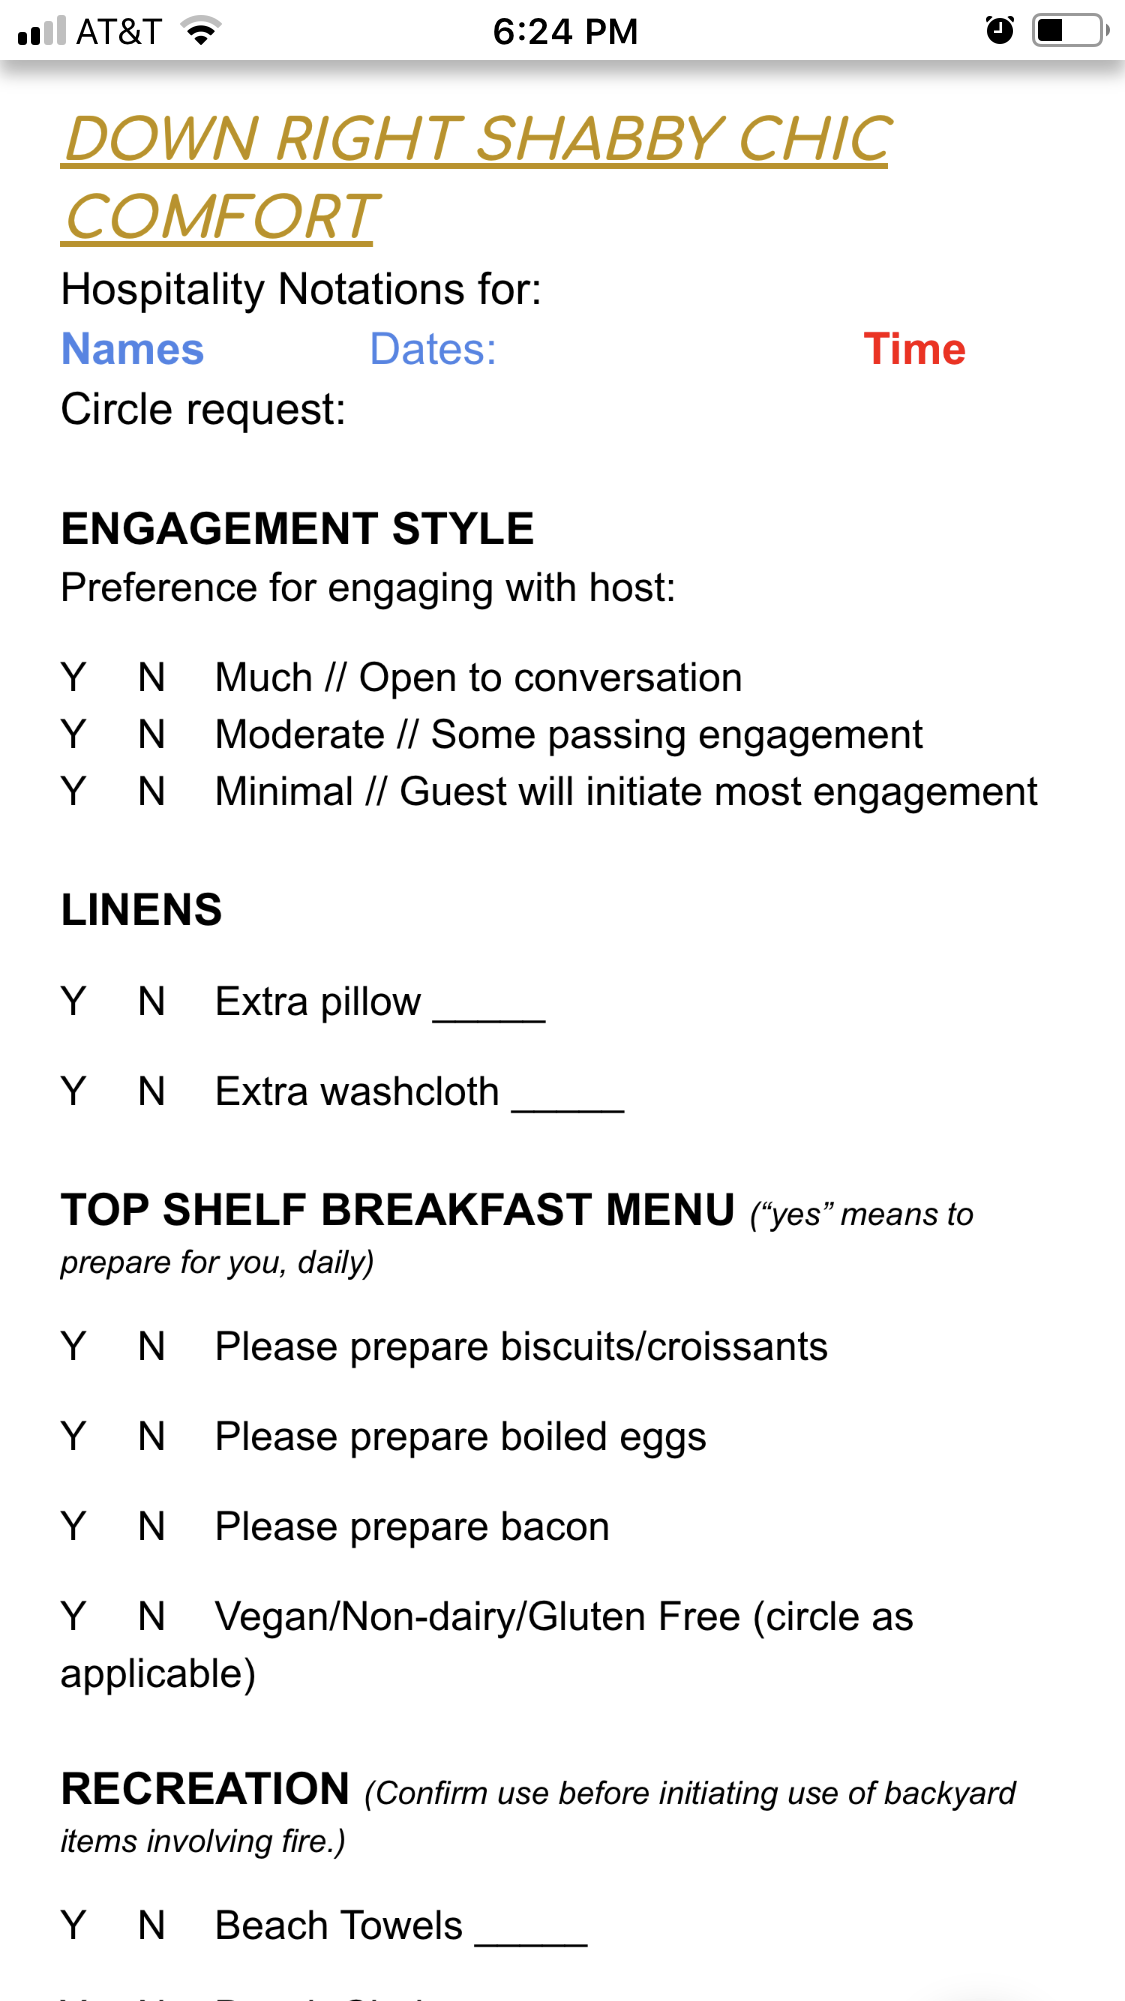 What's on your pre-check-in checklist? - Airbnb Community